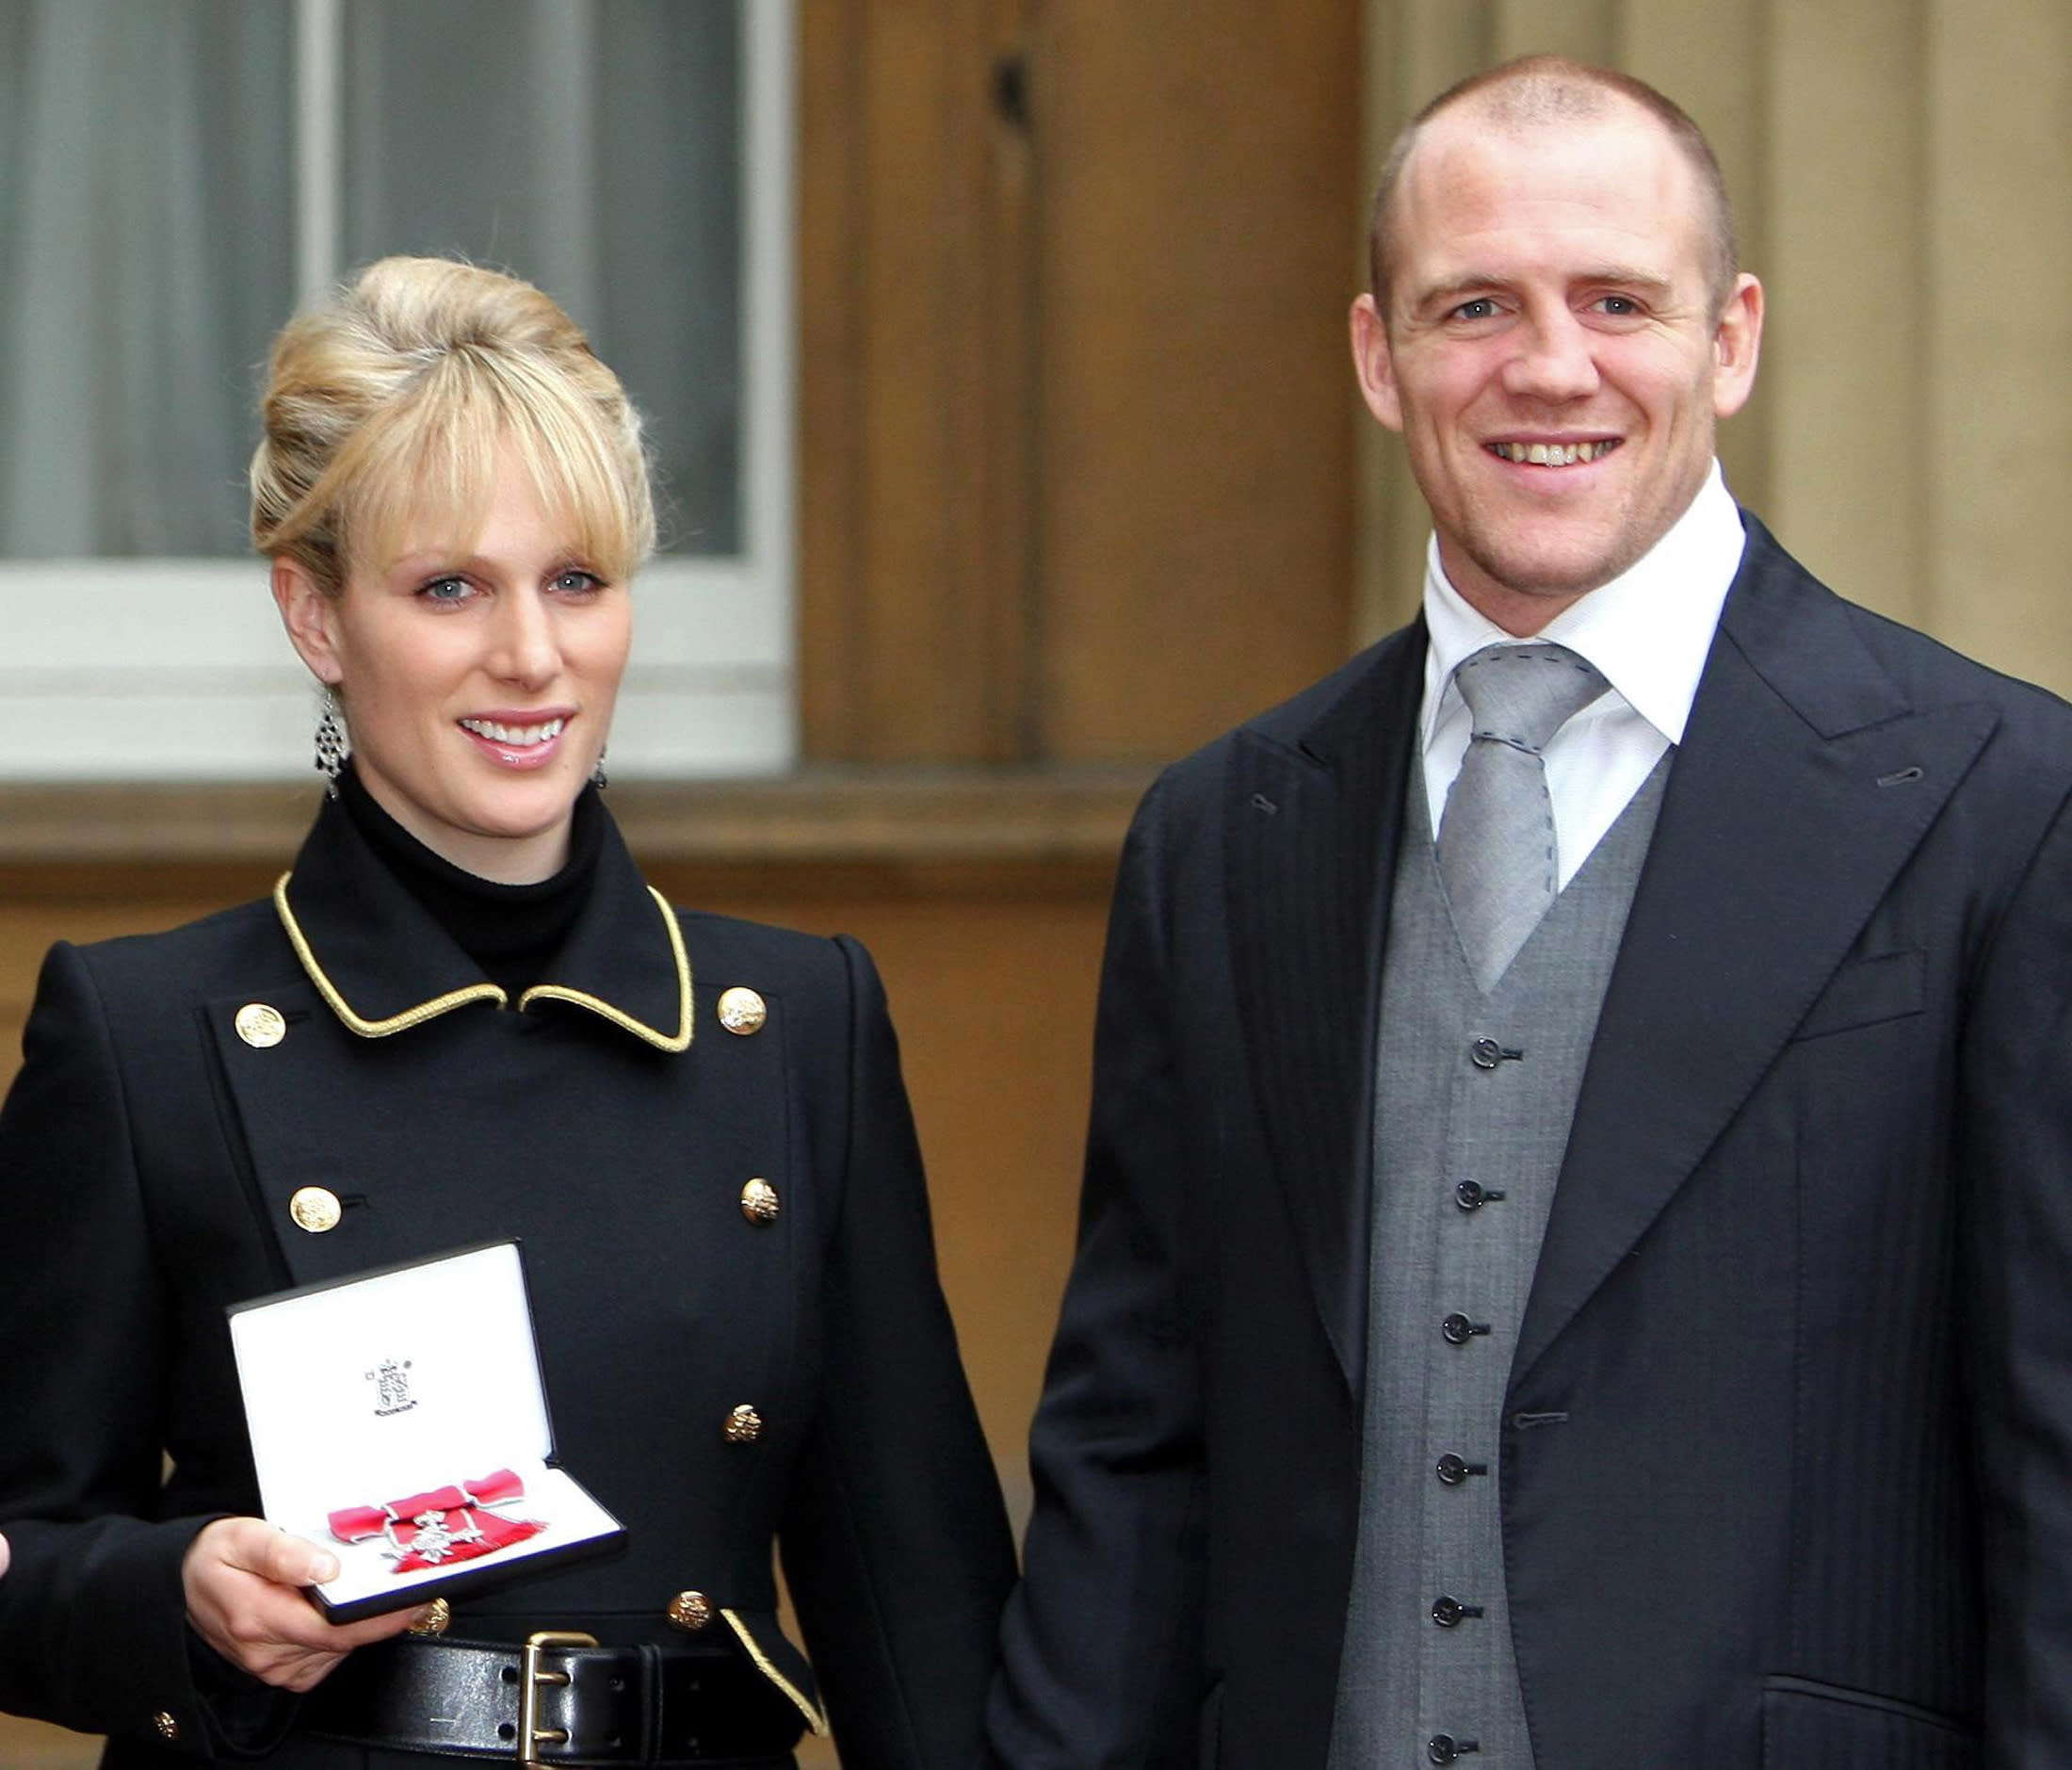 Britain's Zara Phillips smiles with her boyfriend Mike Tindall after receiving her Member of the Order of the British Empire (MBE) from her grandmother the Queen at Buckingham Palace in London November 28, 2007.    REUTERS/Steve Parsons/Pool (BRITAIN)